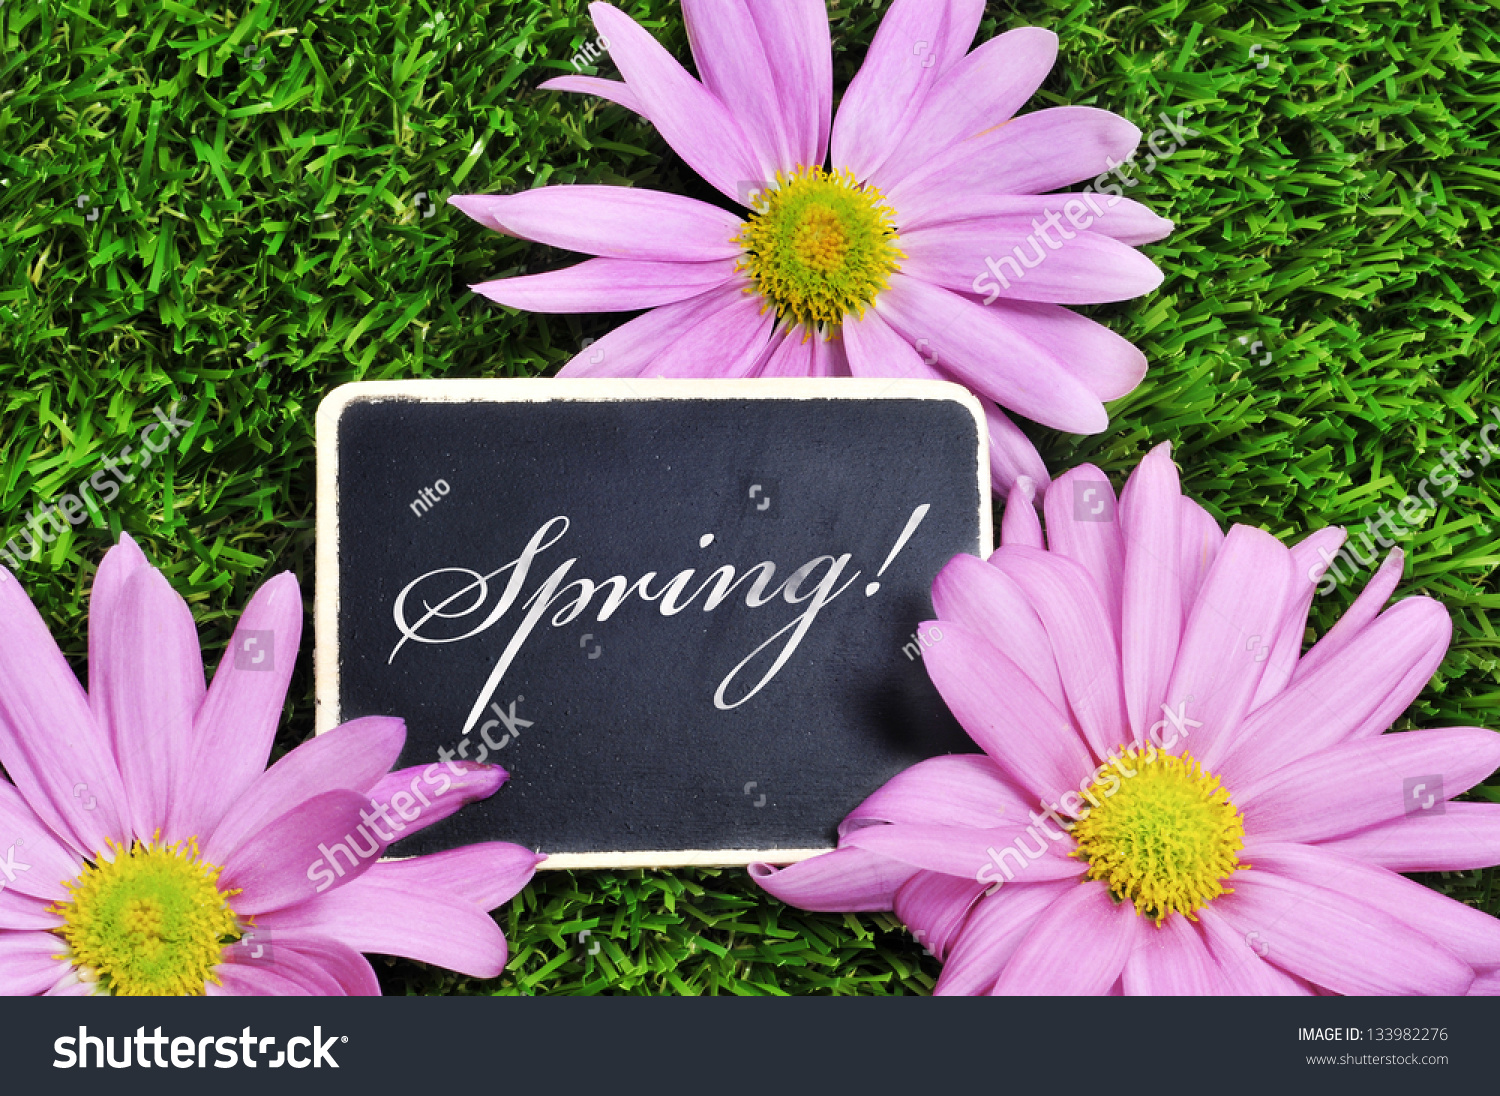 Word spring written blackboard on grass stock photo 133982276 word spring written in a blackboard on the grass with pink flowers mightylinksfo